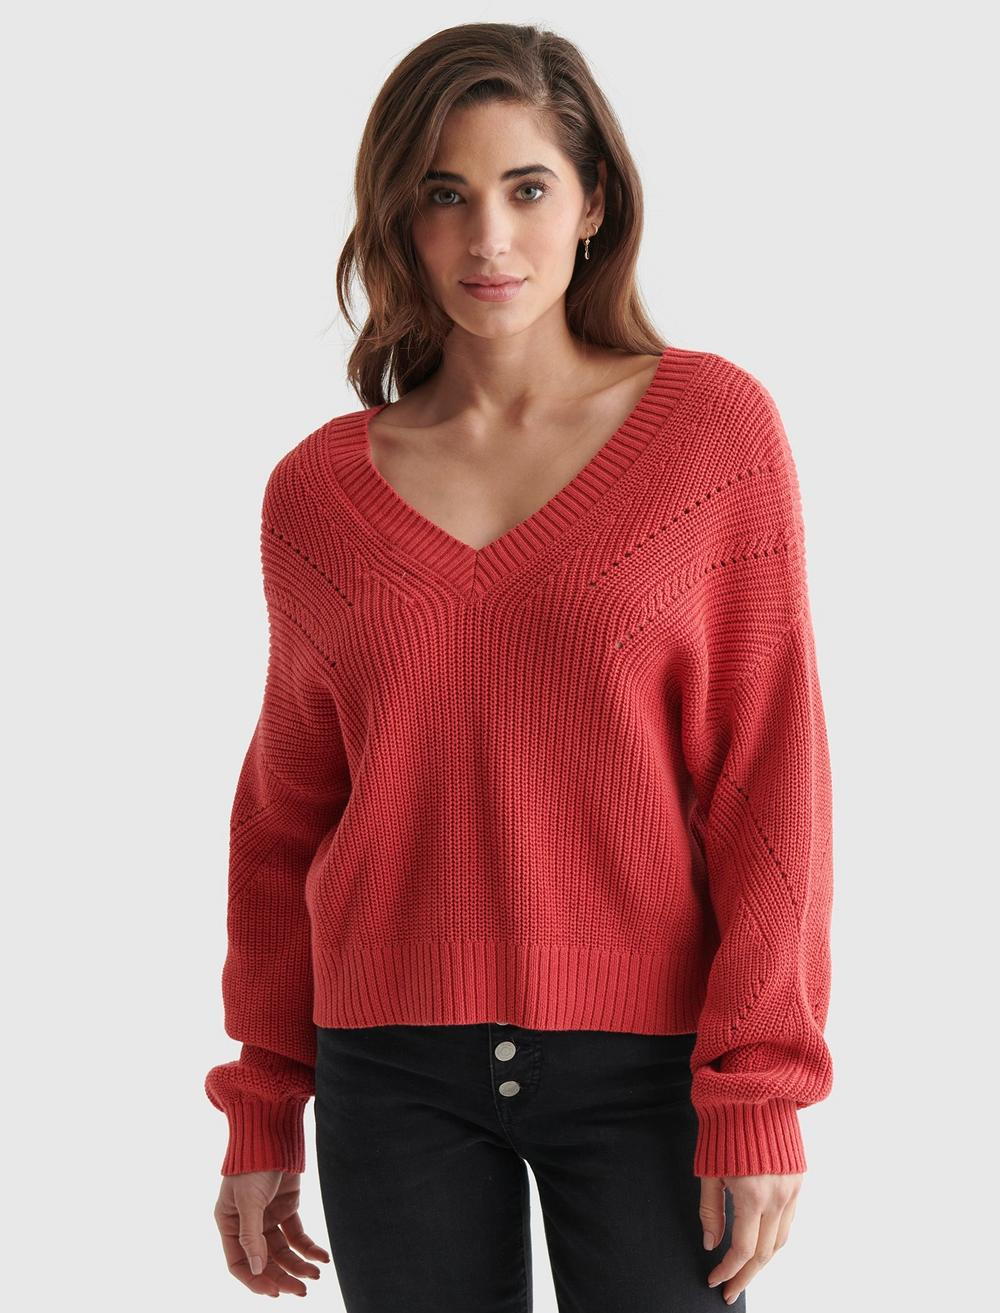 CROPPED RIB-KNIT PULLOVER REVERSIBLE SWEATER, image 6